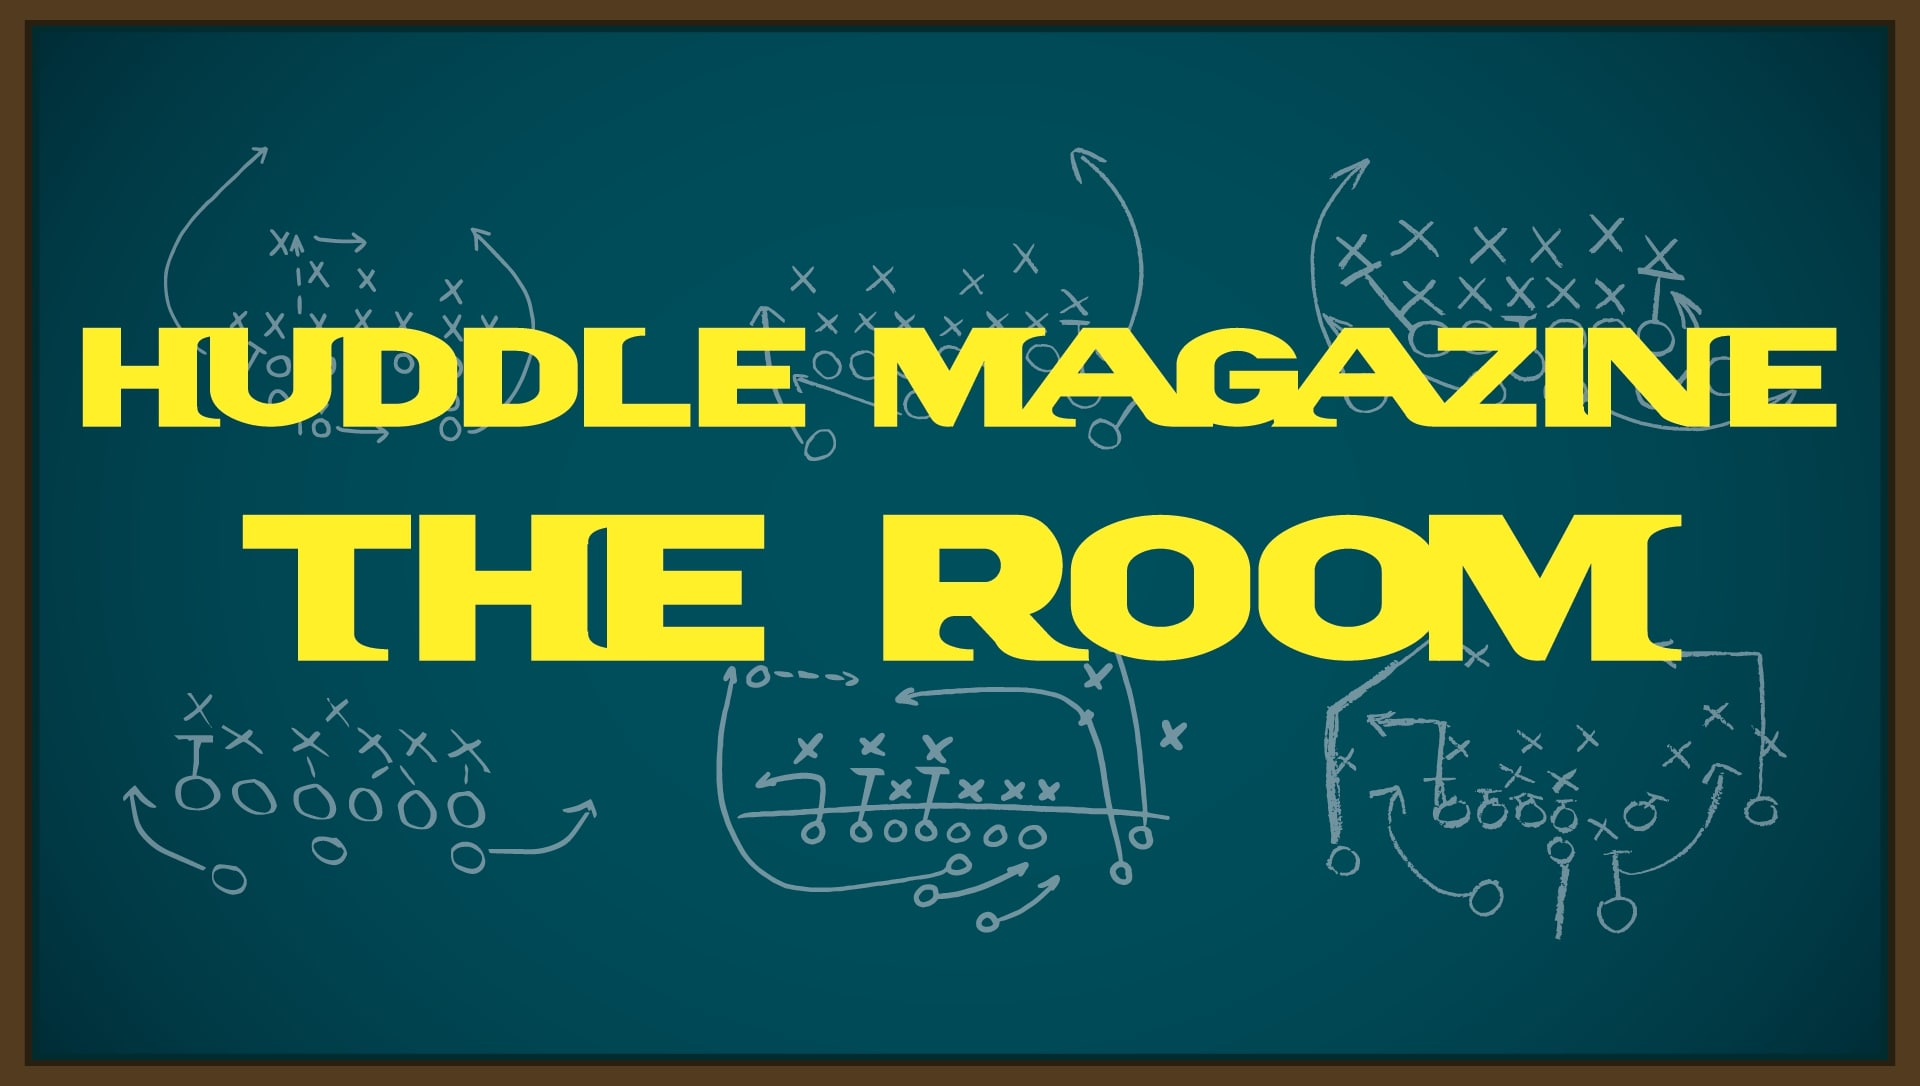 The Room #10 - analisi tattica delle partite